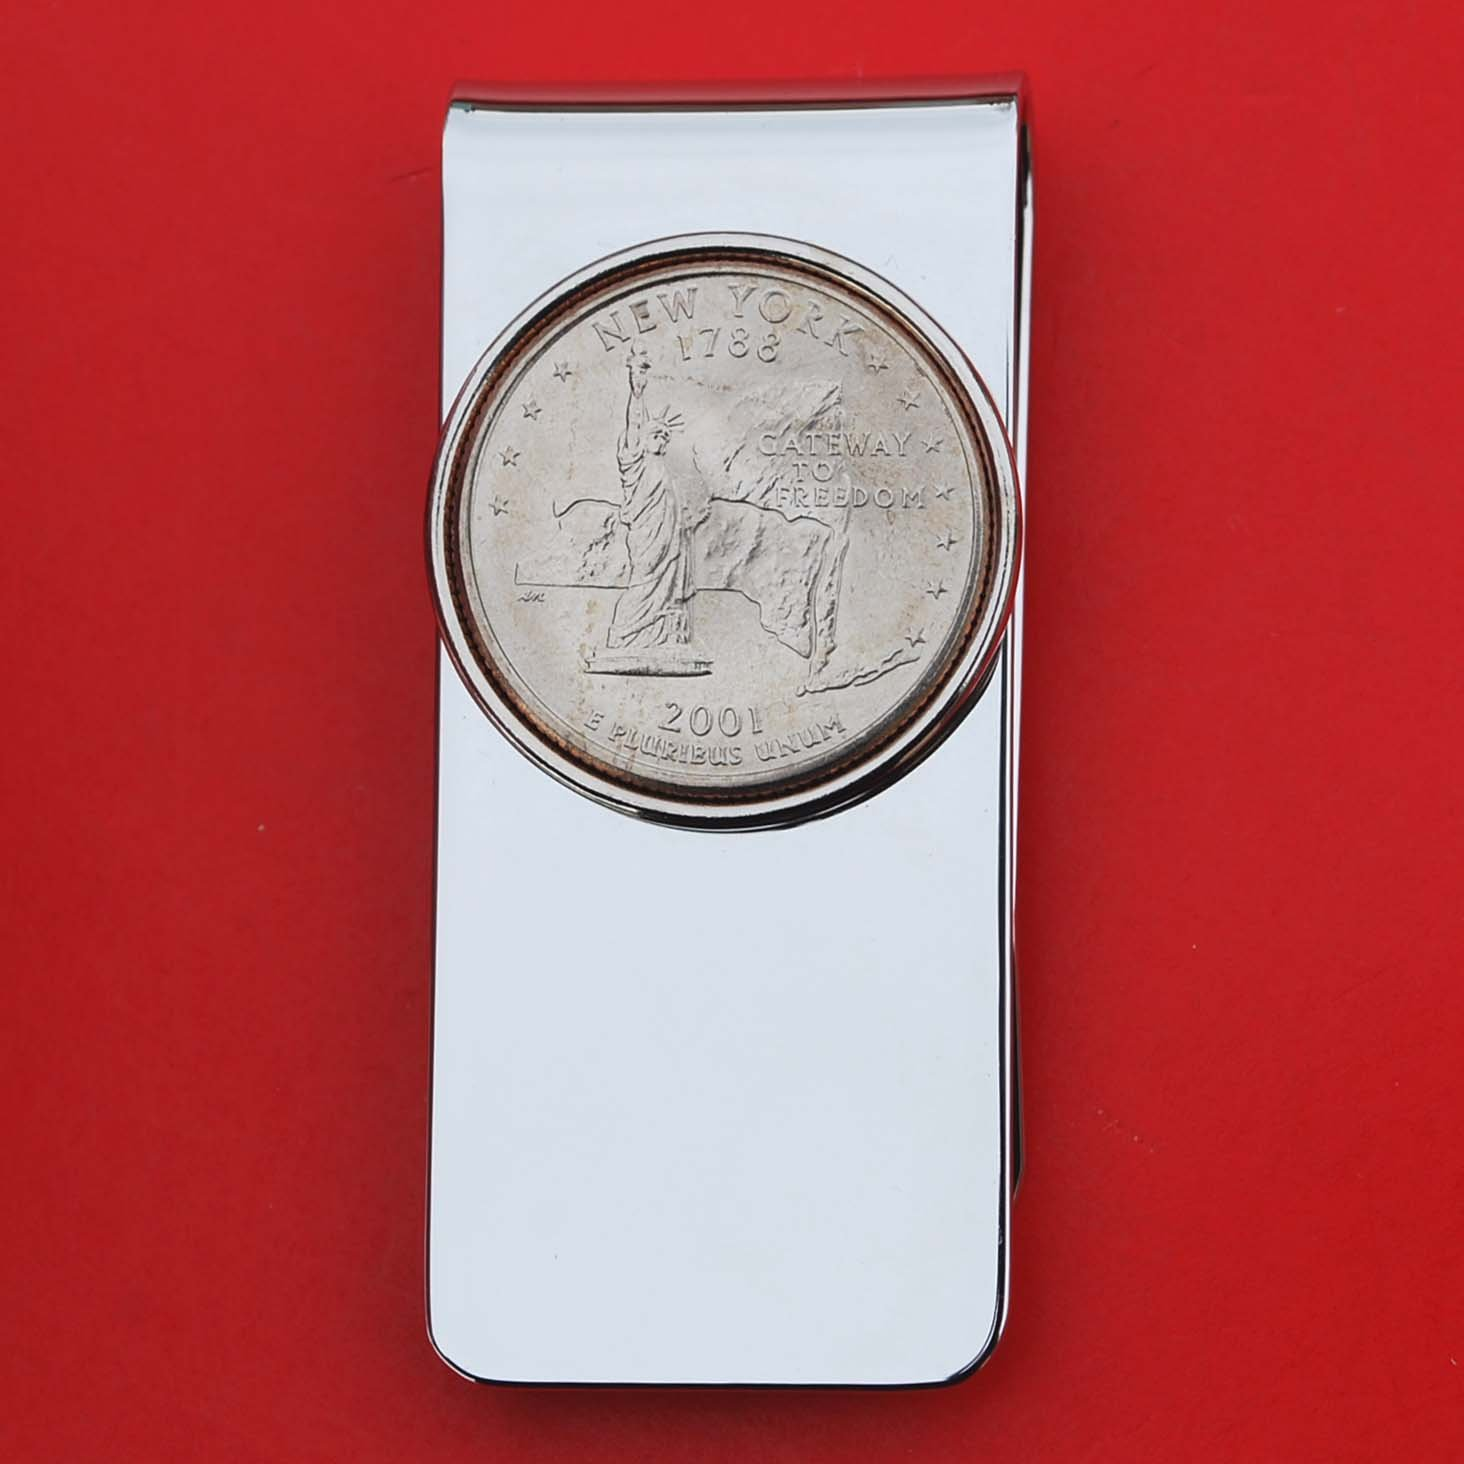 US 2001 New York State Quarter BU Uncirculated Coin Solid Brass Silver Money Clip New - High Quality